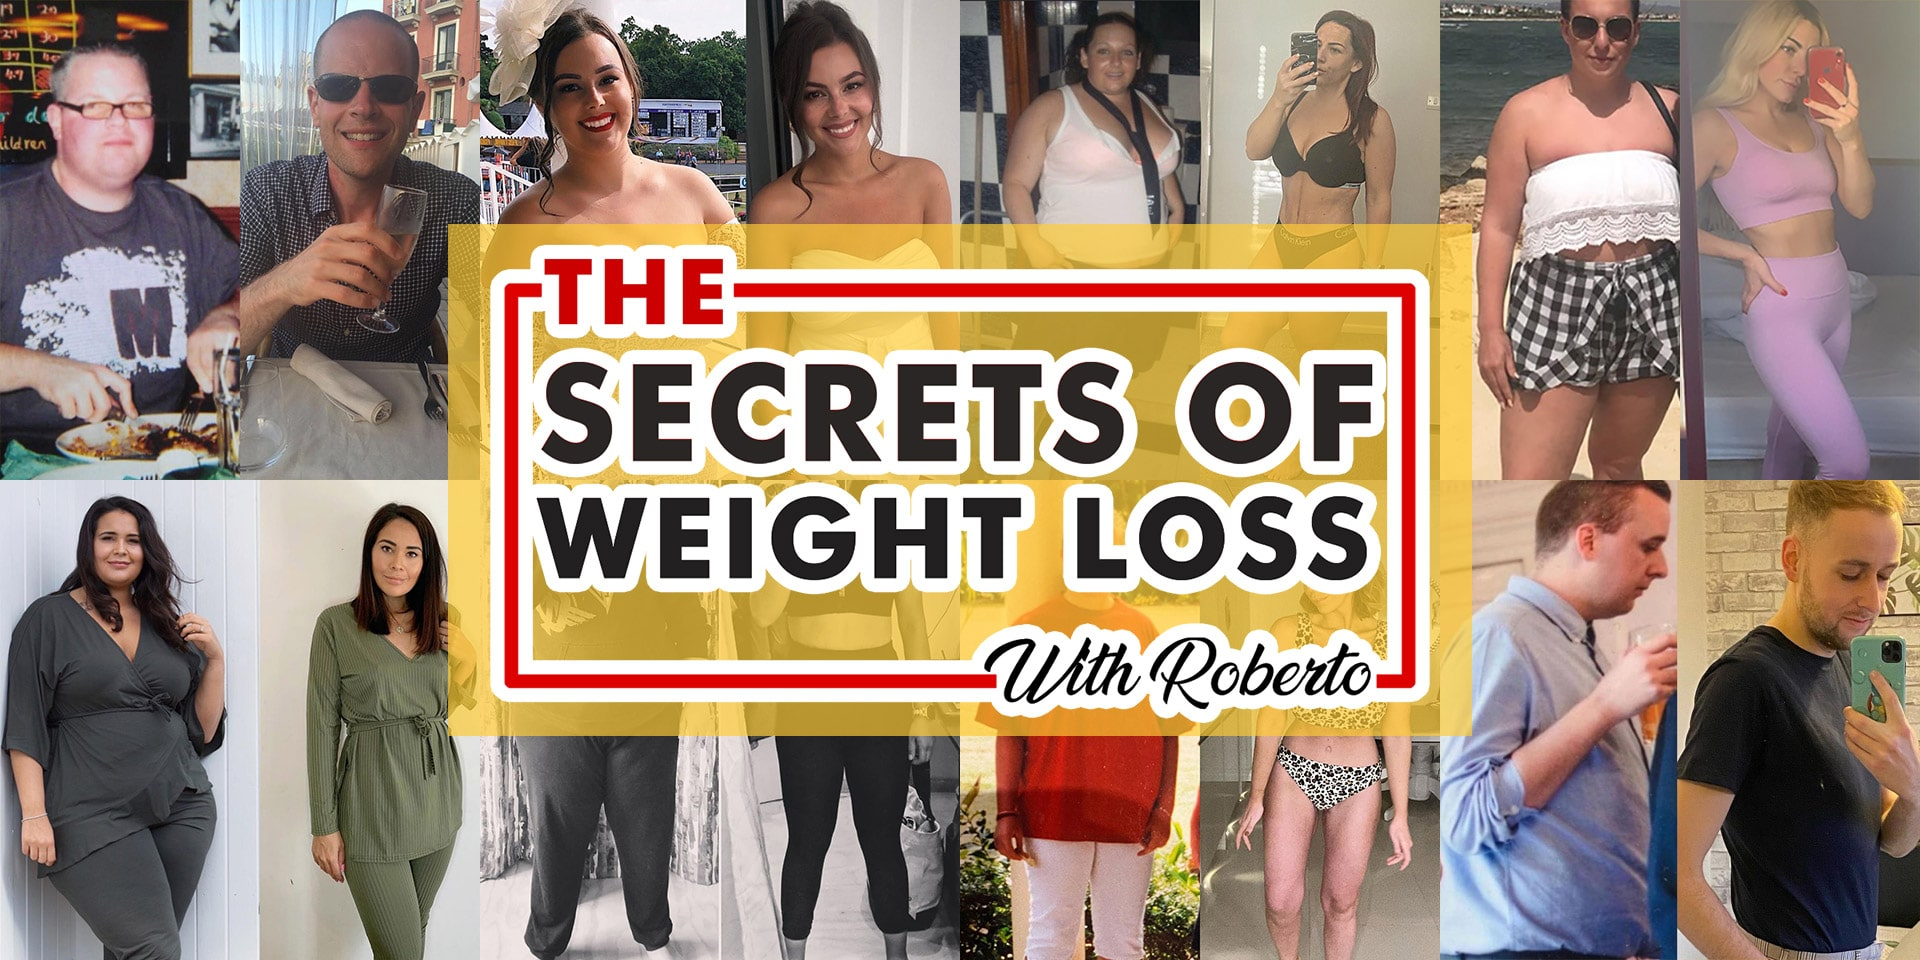 The main image that a user lands on when visiting the secrets of weight loss website. It is a collage of images, eight in total, showing before and after pictures of people involved in the podcast who have lost weight successfully and kept it off. These 8 images have a single image laying over the top of them which is the logo for the secrets of weight loss with Roberto